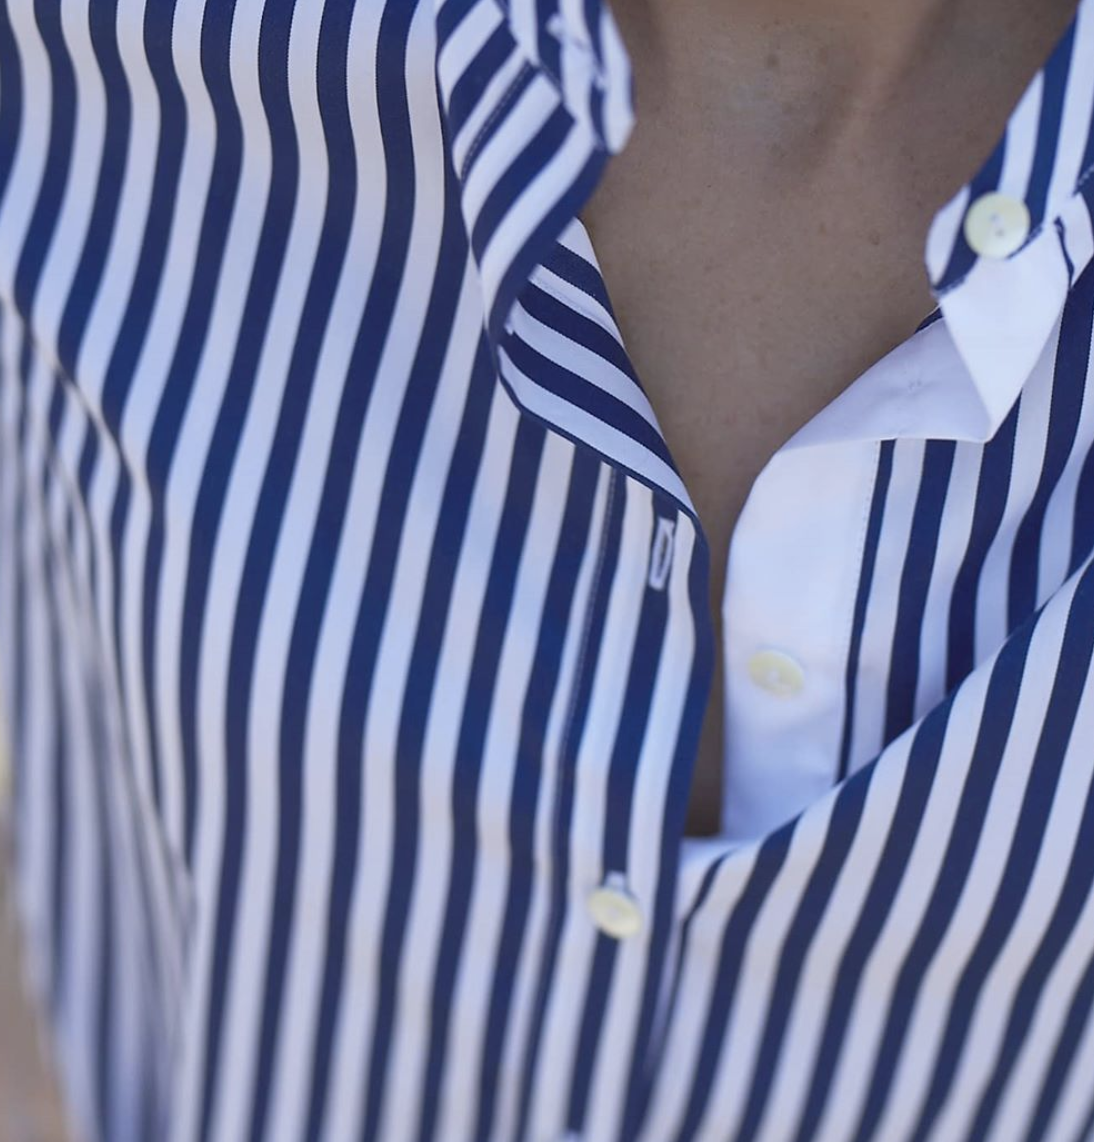 Hubert Gasser Striped Shirt Blue